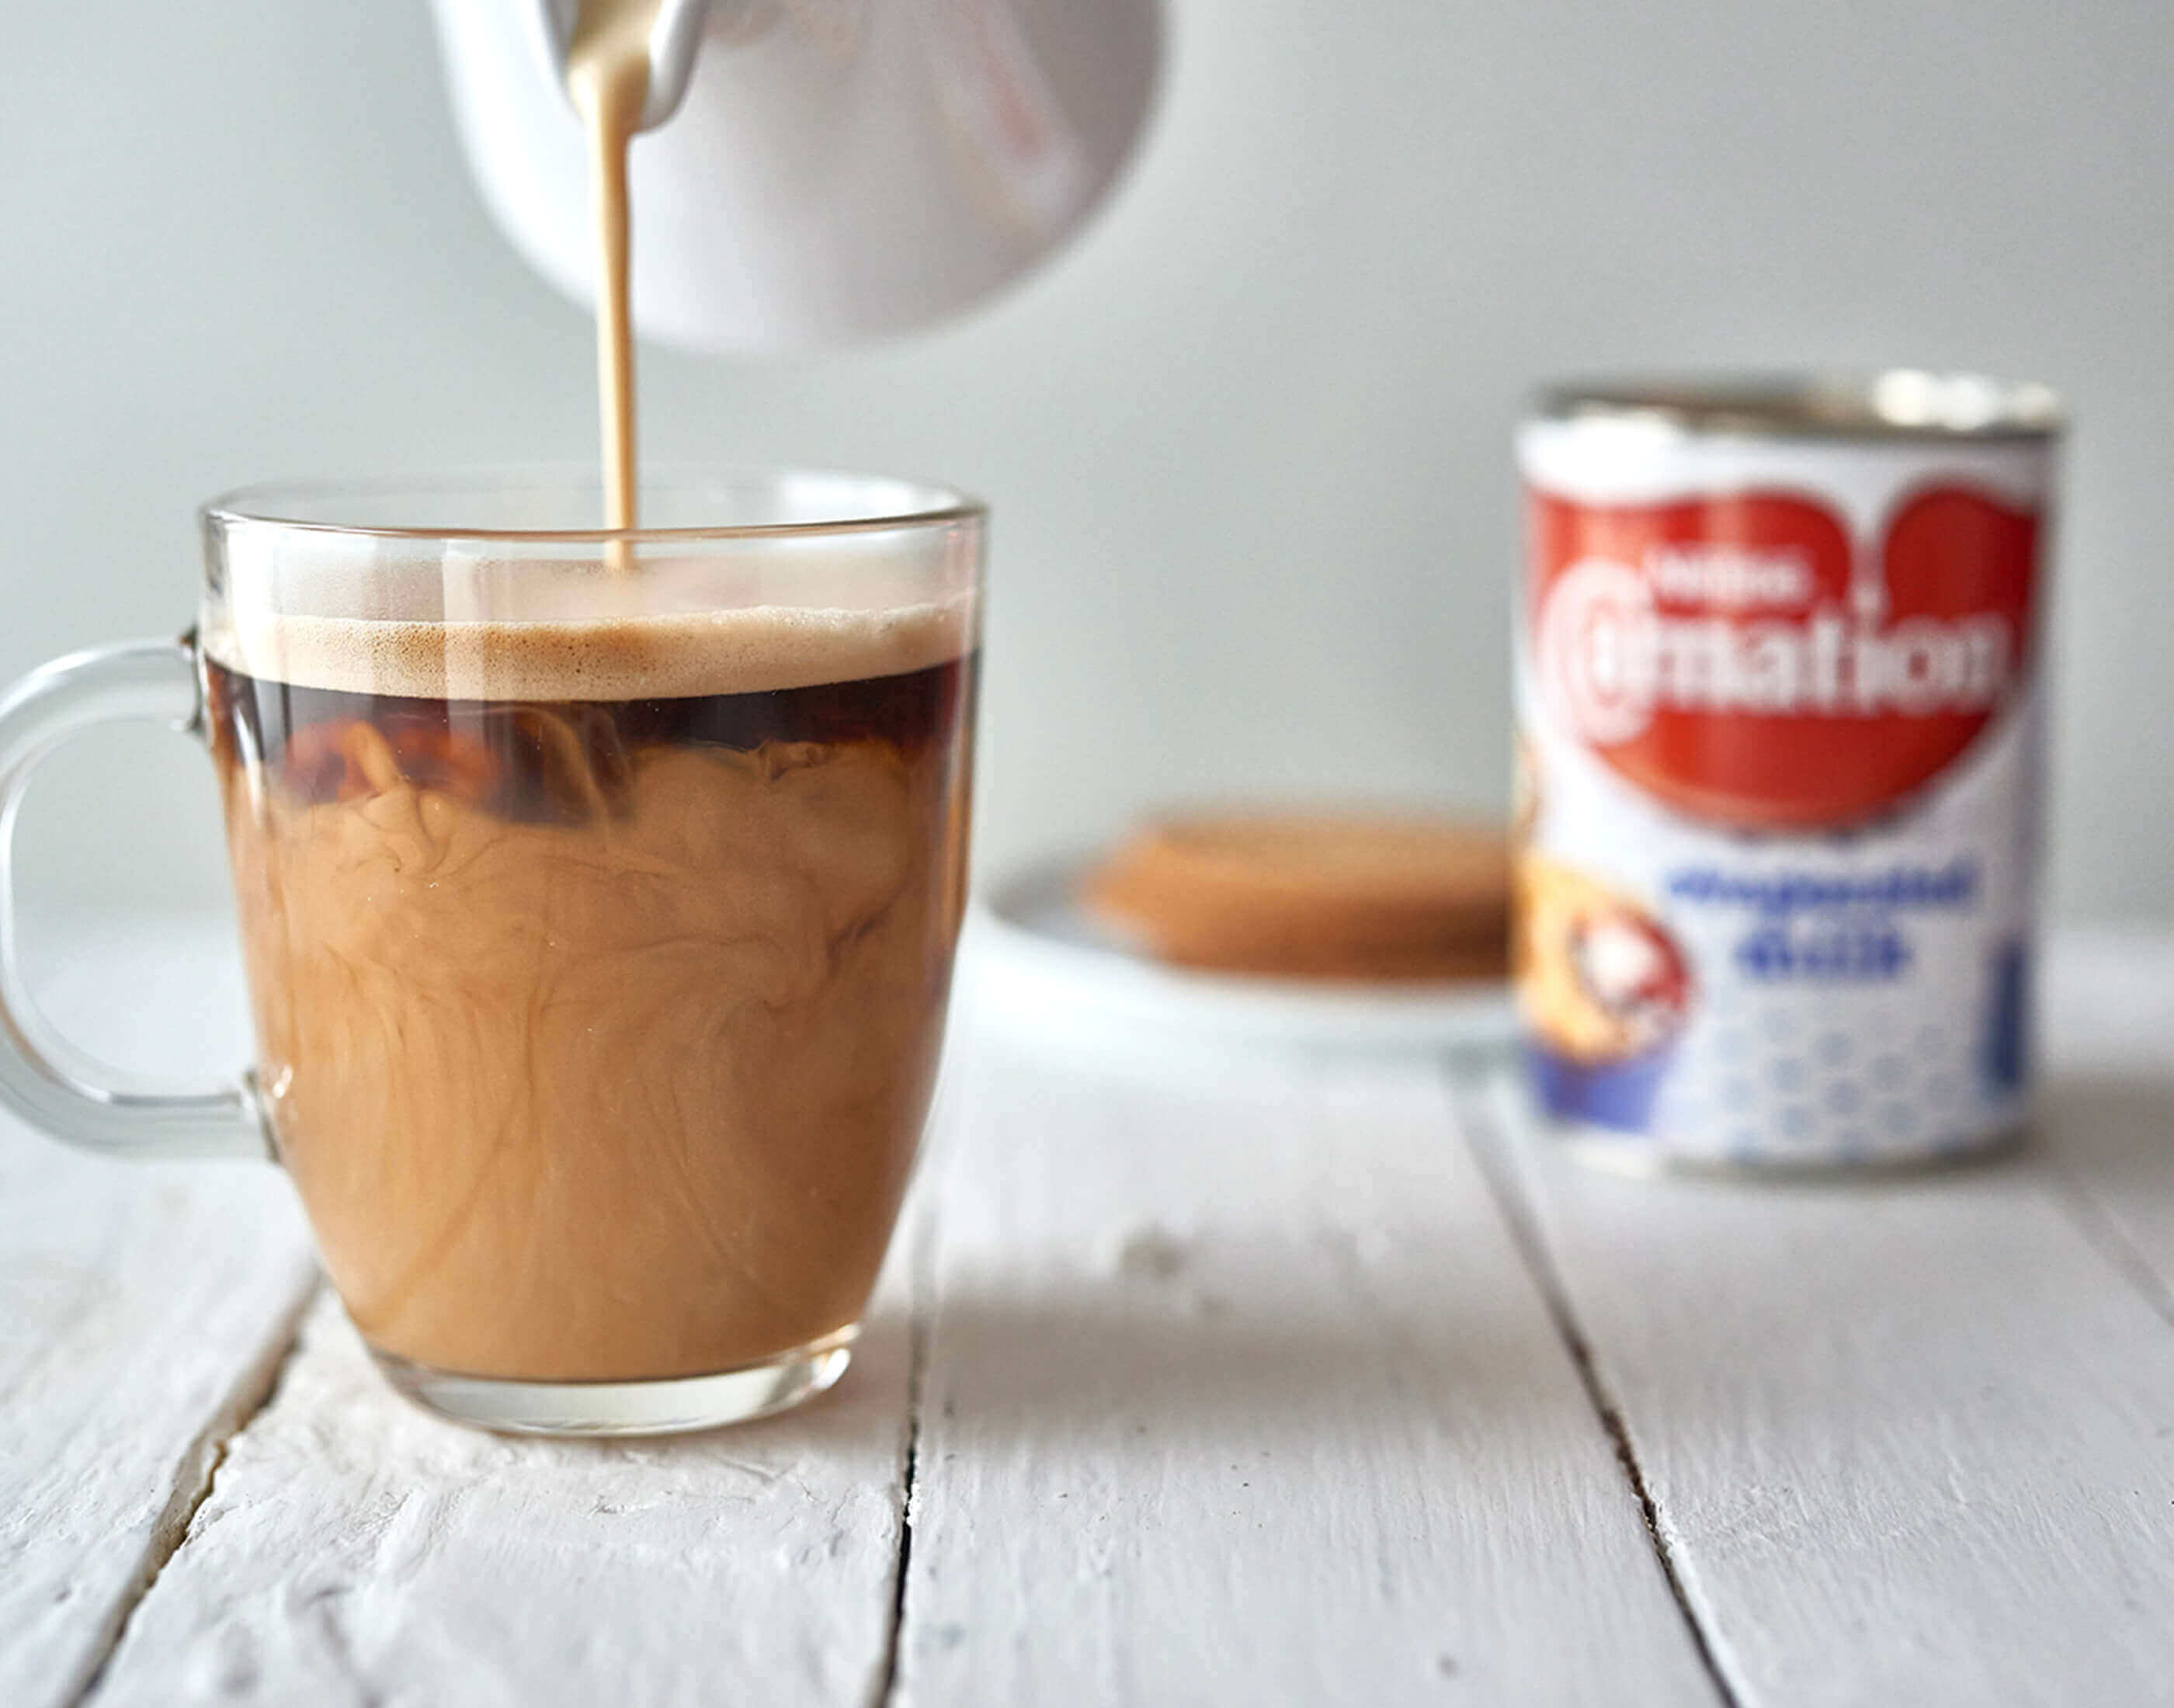 Evaporated milk poured in tea/coffee